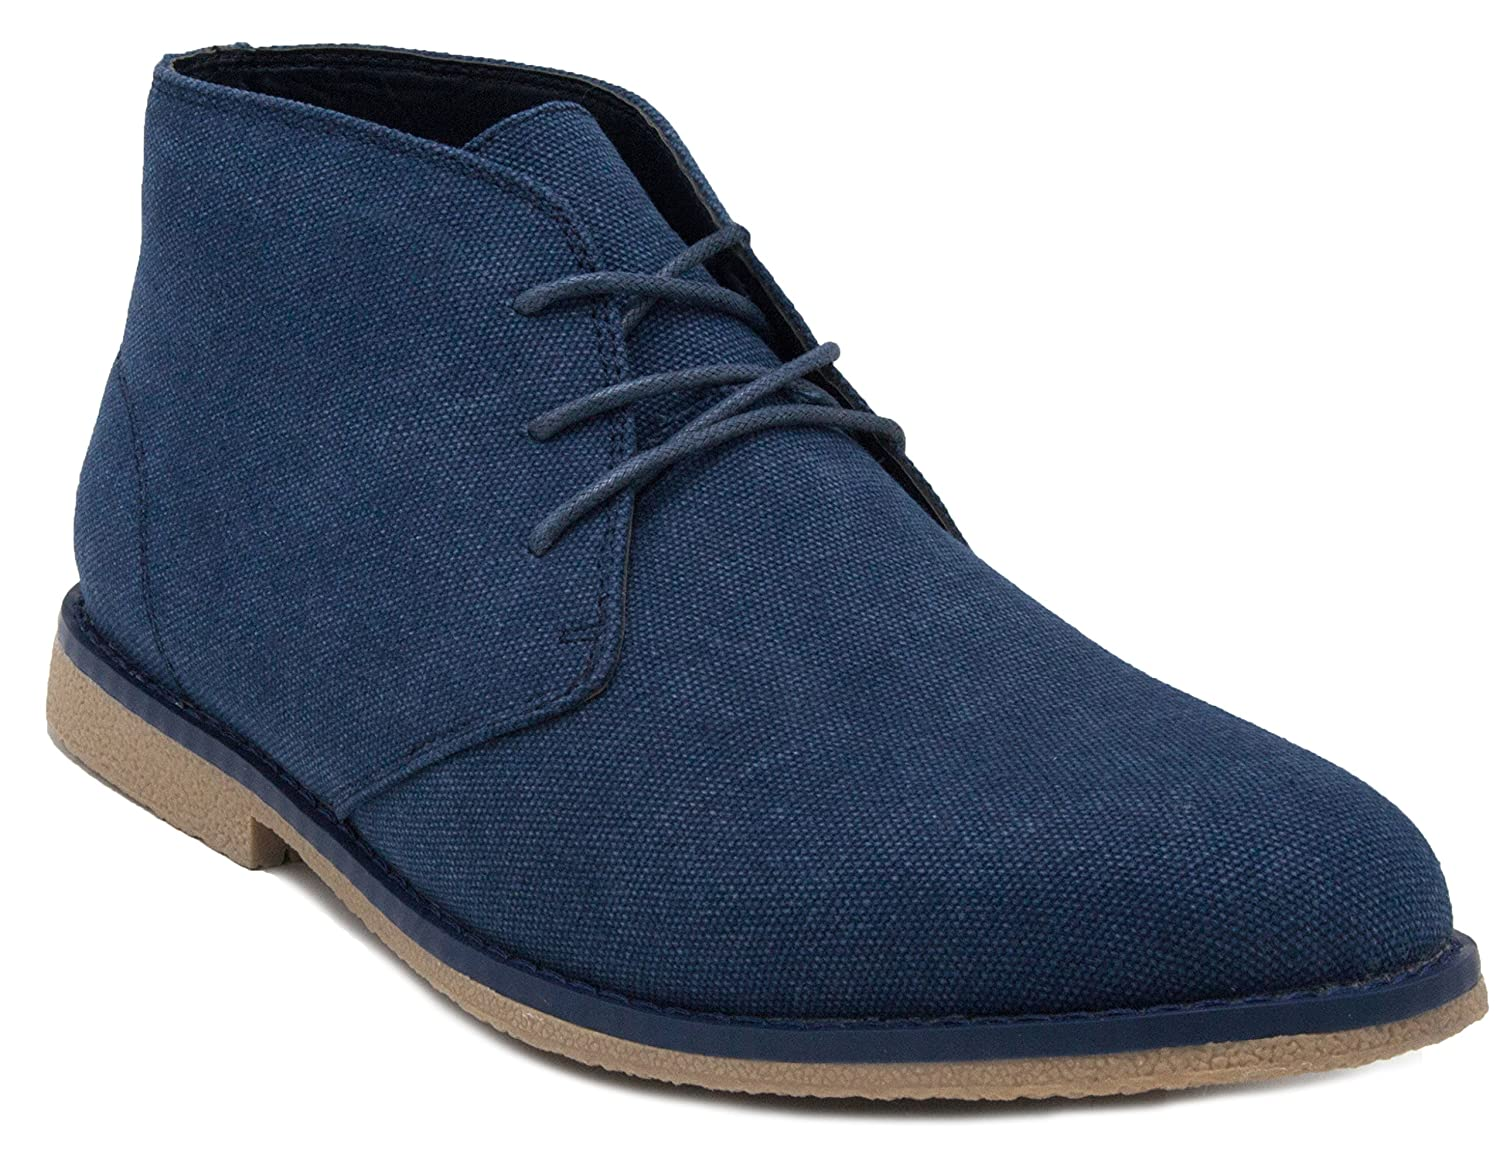 London Fog Mens Broadstreet Chukka Boot LFM-066